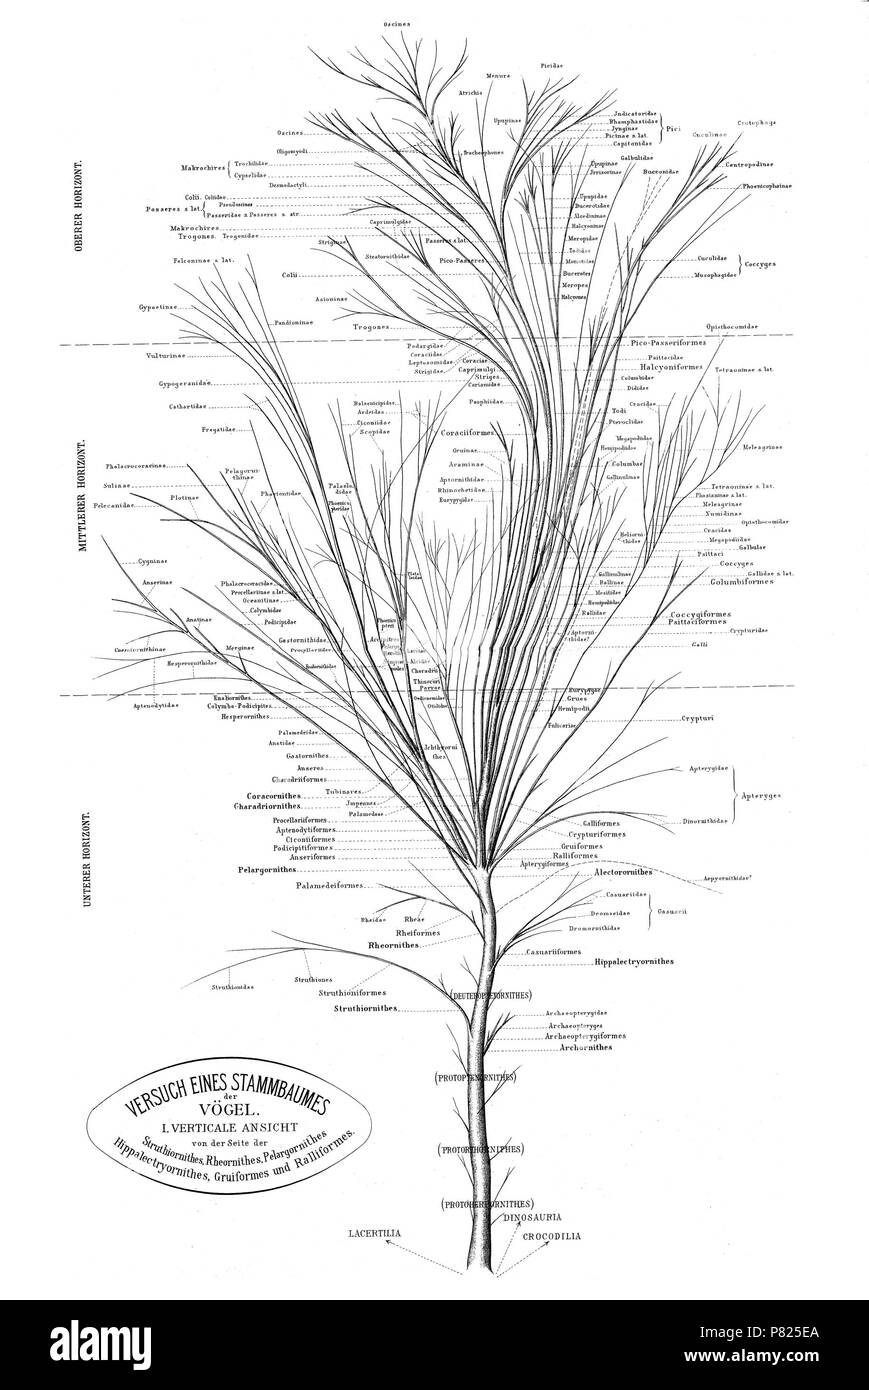 Phylogenetic tree of birds based on anatomy and morphology by Max ...